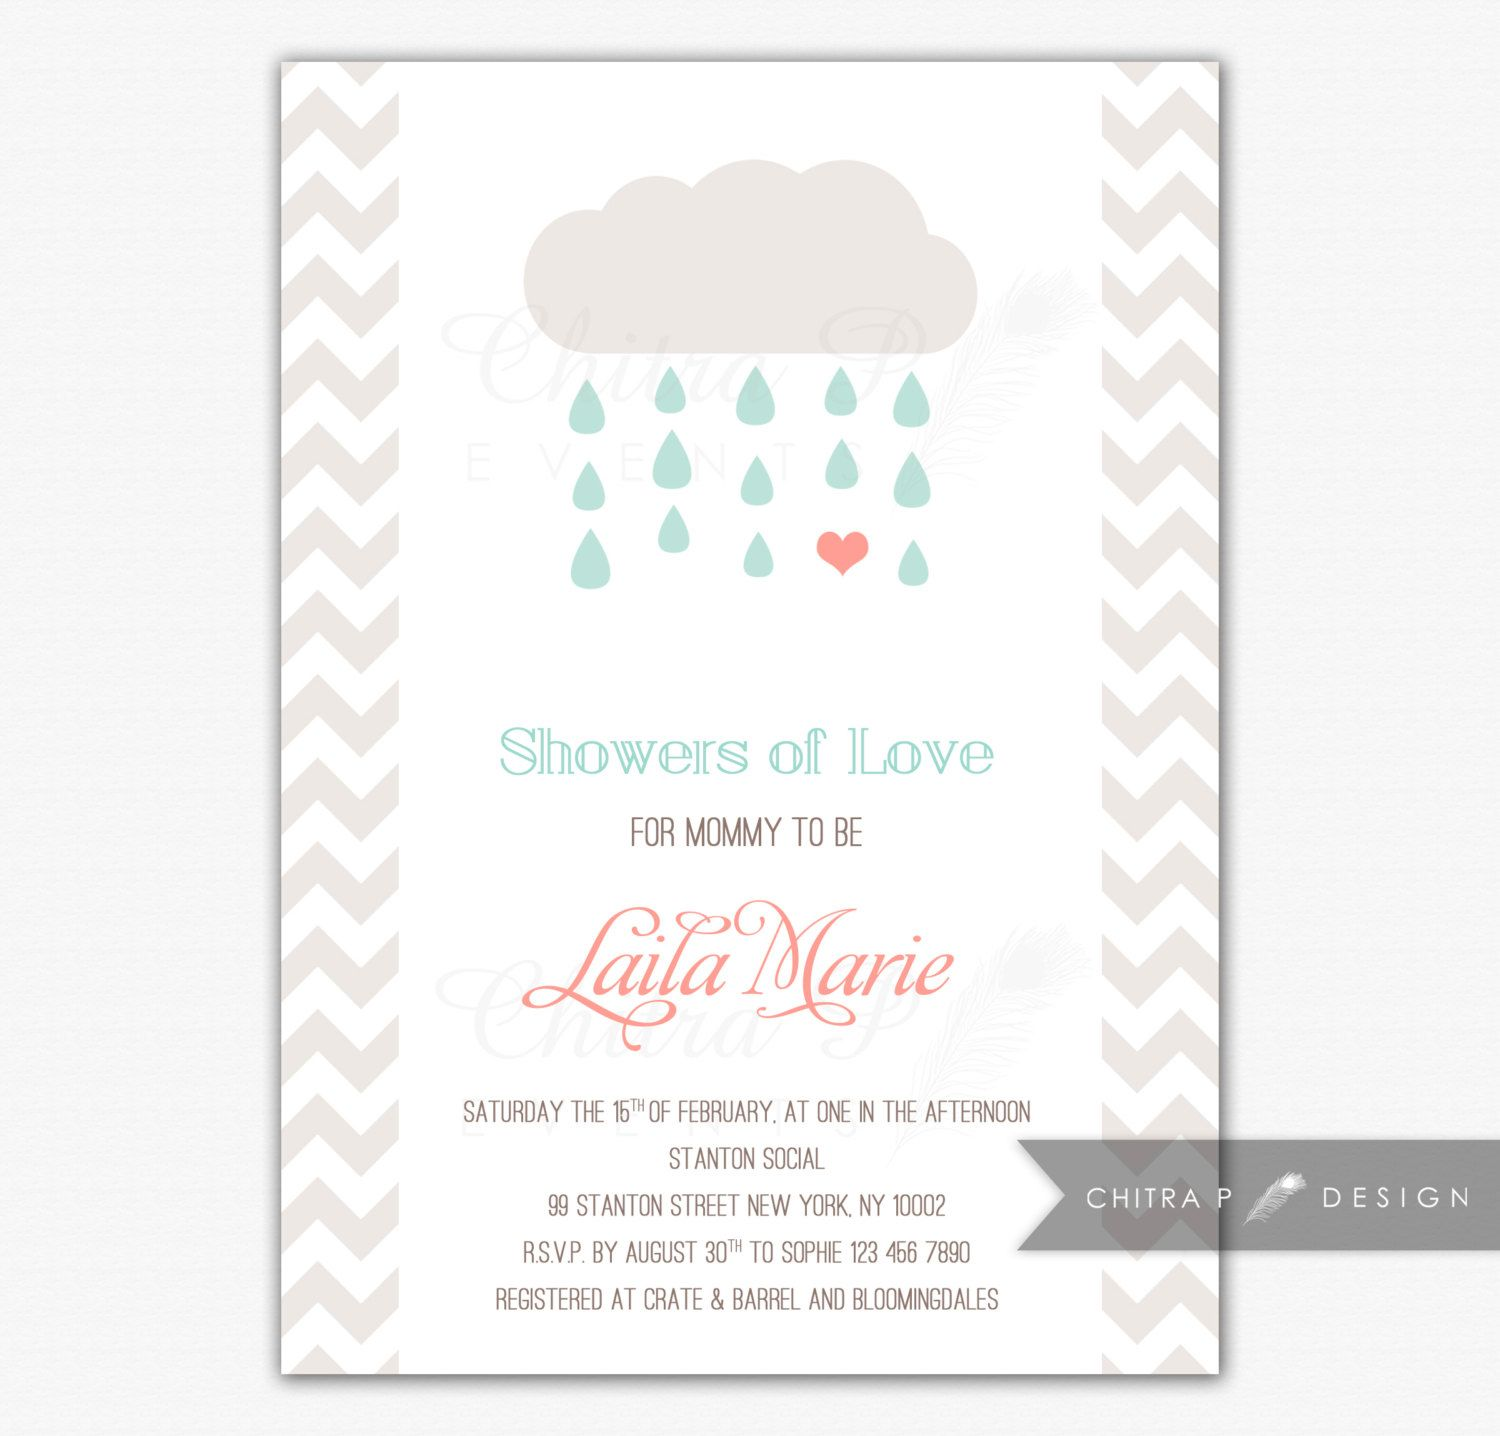 Coral & Mint Baby Shower Invitation Printed Showers of Love